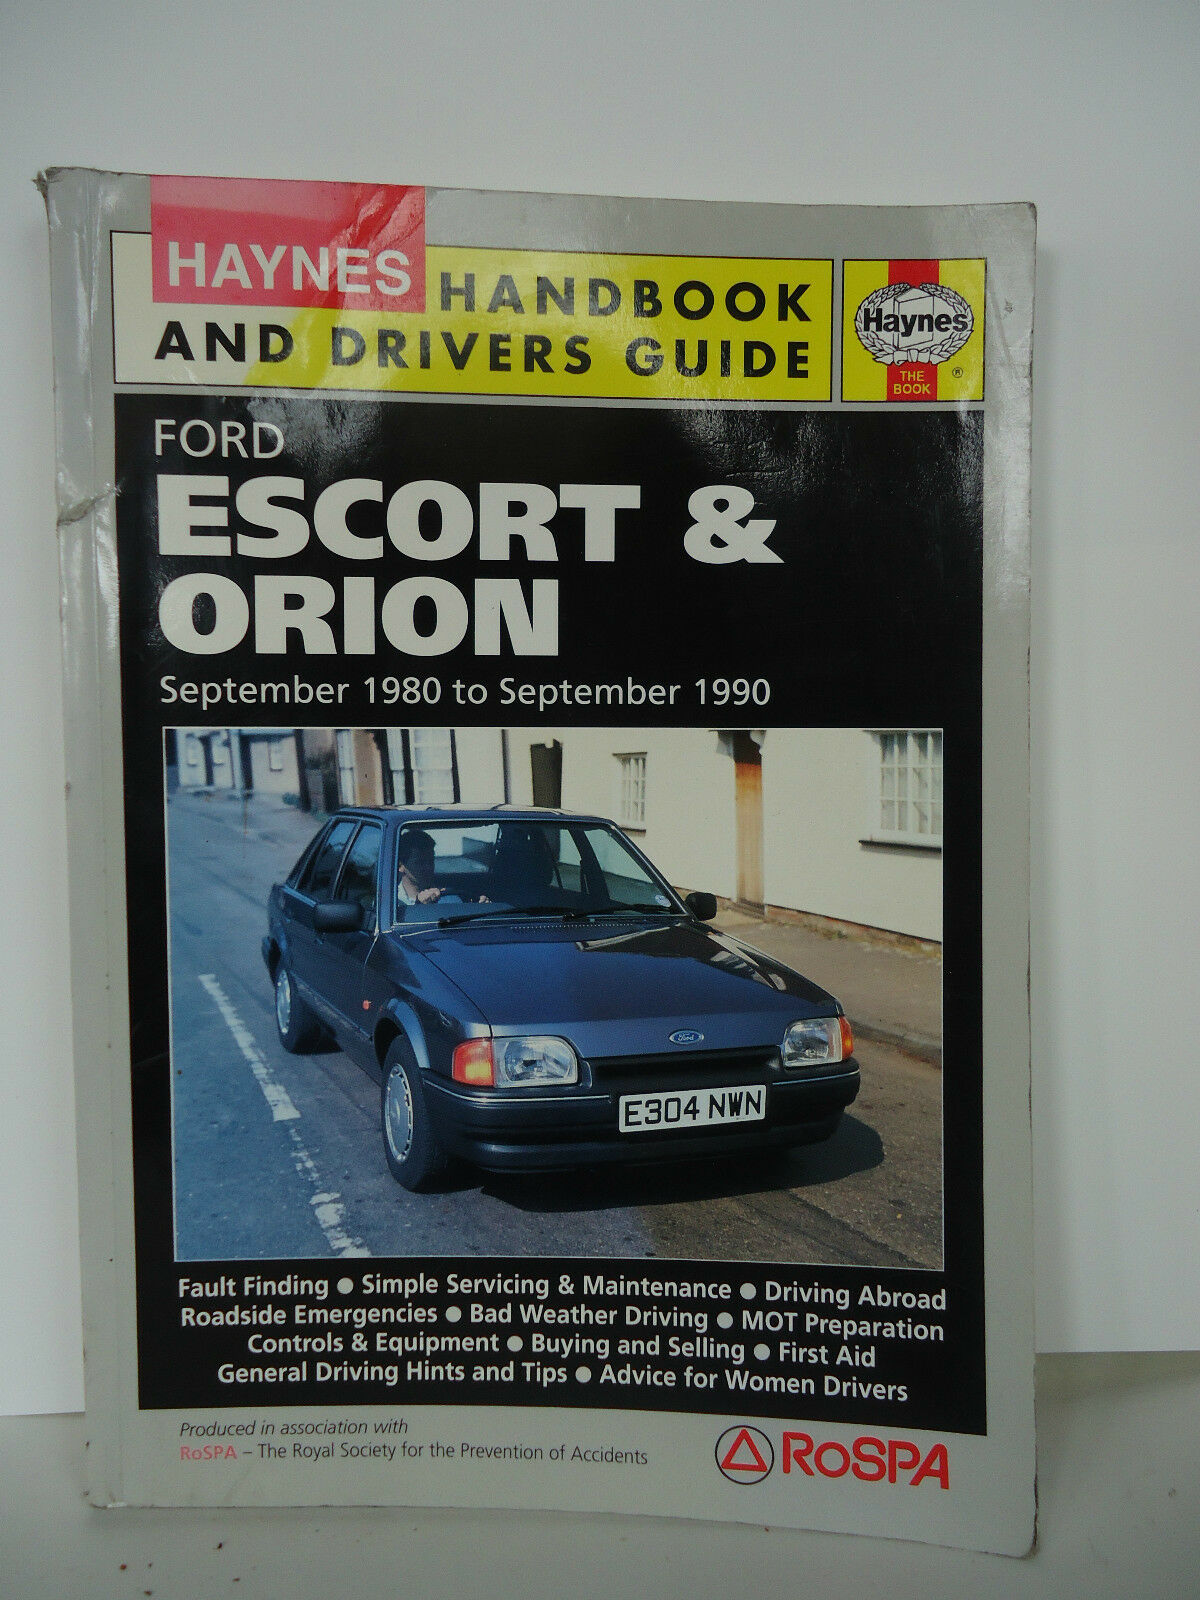 Haynes Manual Ford Escort & Orion 1 of 1Only 1 available ...